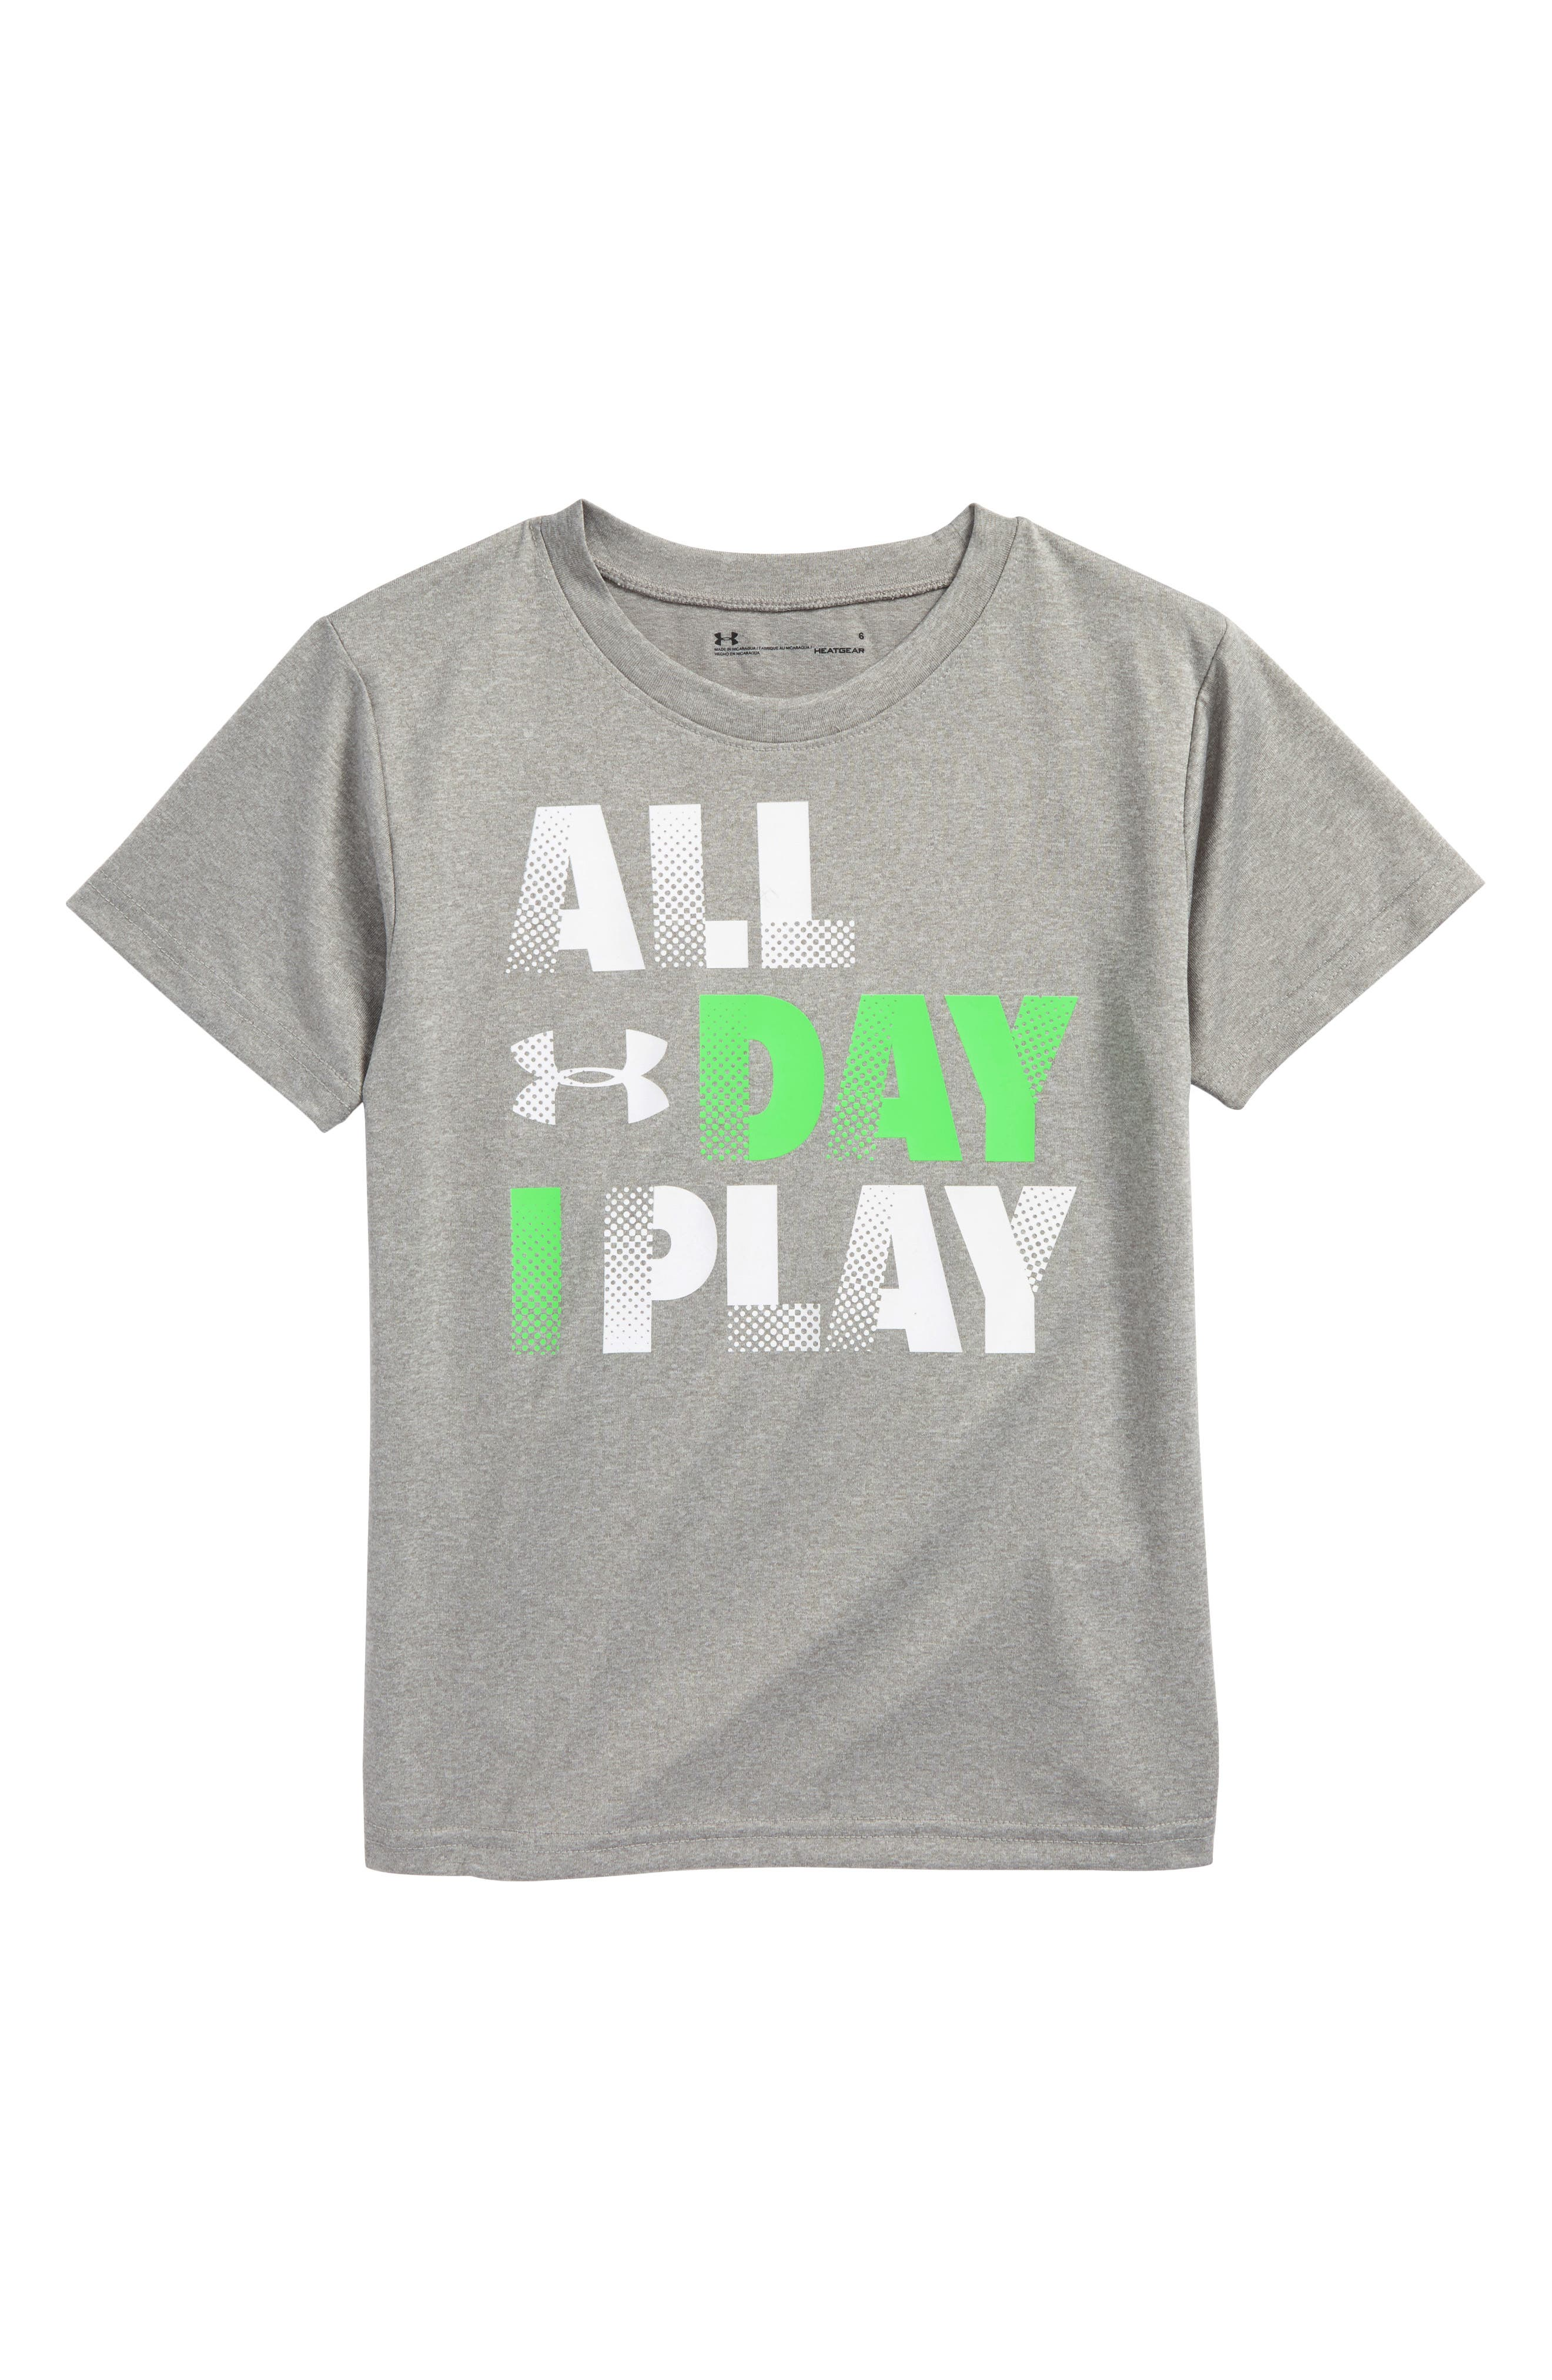 Under Armour All Day I Play Graphic T-Shirt (Toddler Boys & Little Boys)